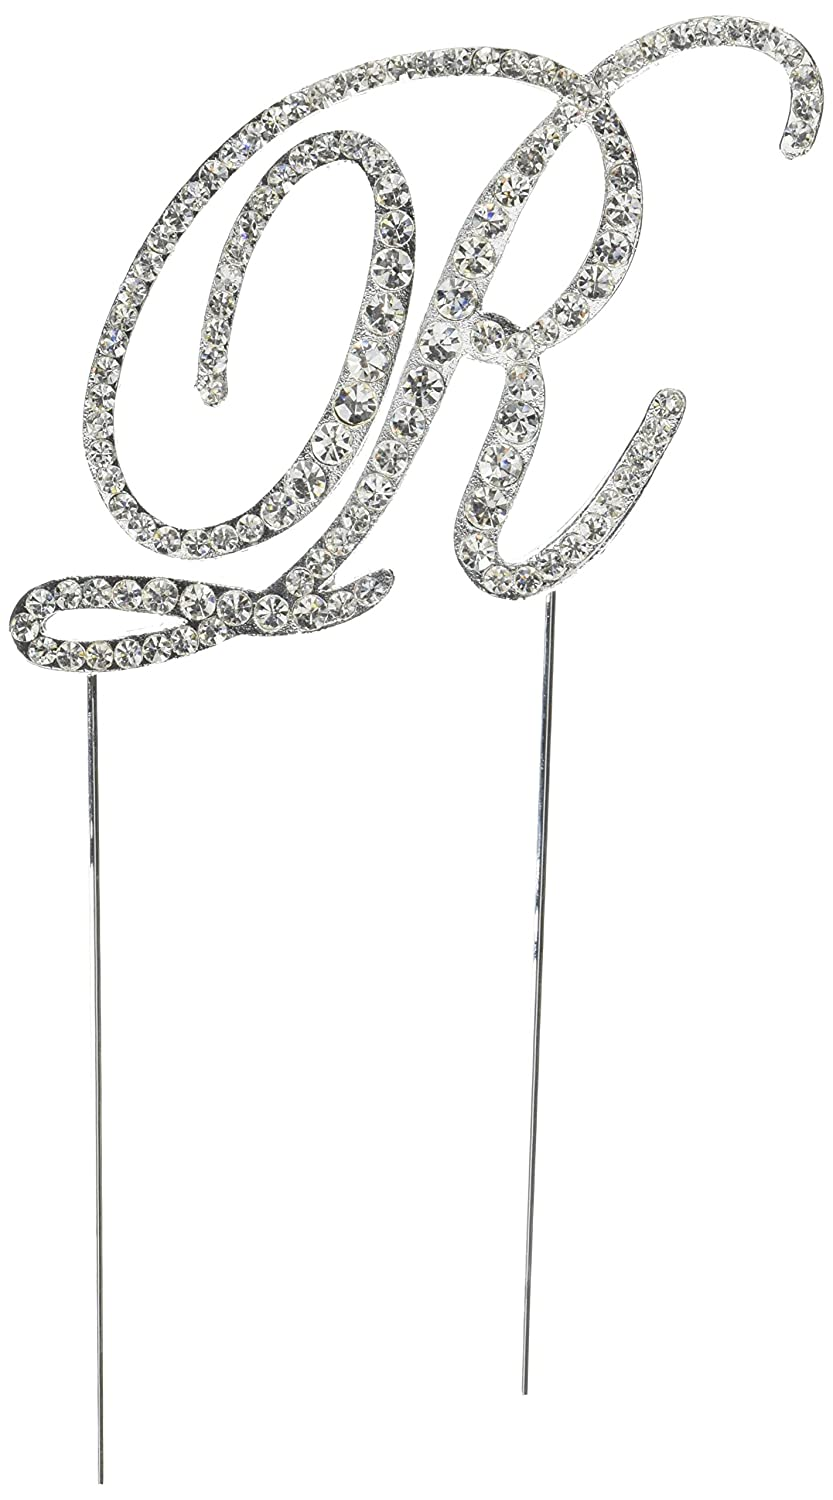 Silver UO-CT-VIC-0038-R Unik Occasions Victorian Crystal Rhinestone Wedding Cake Topper Large Letter R